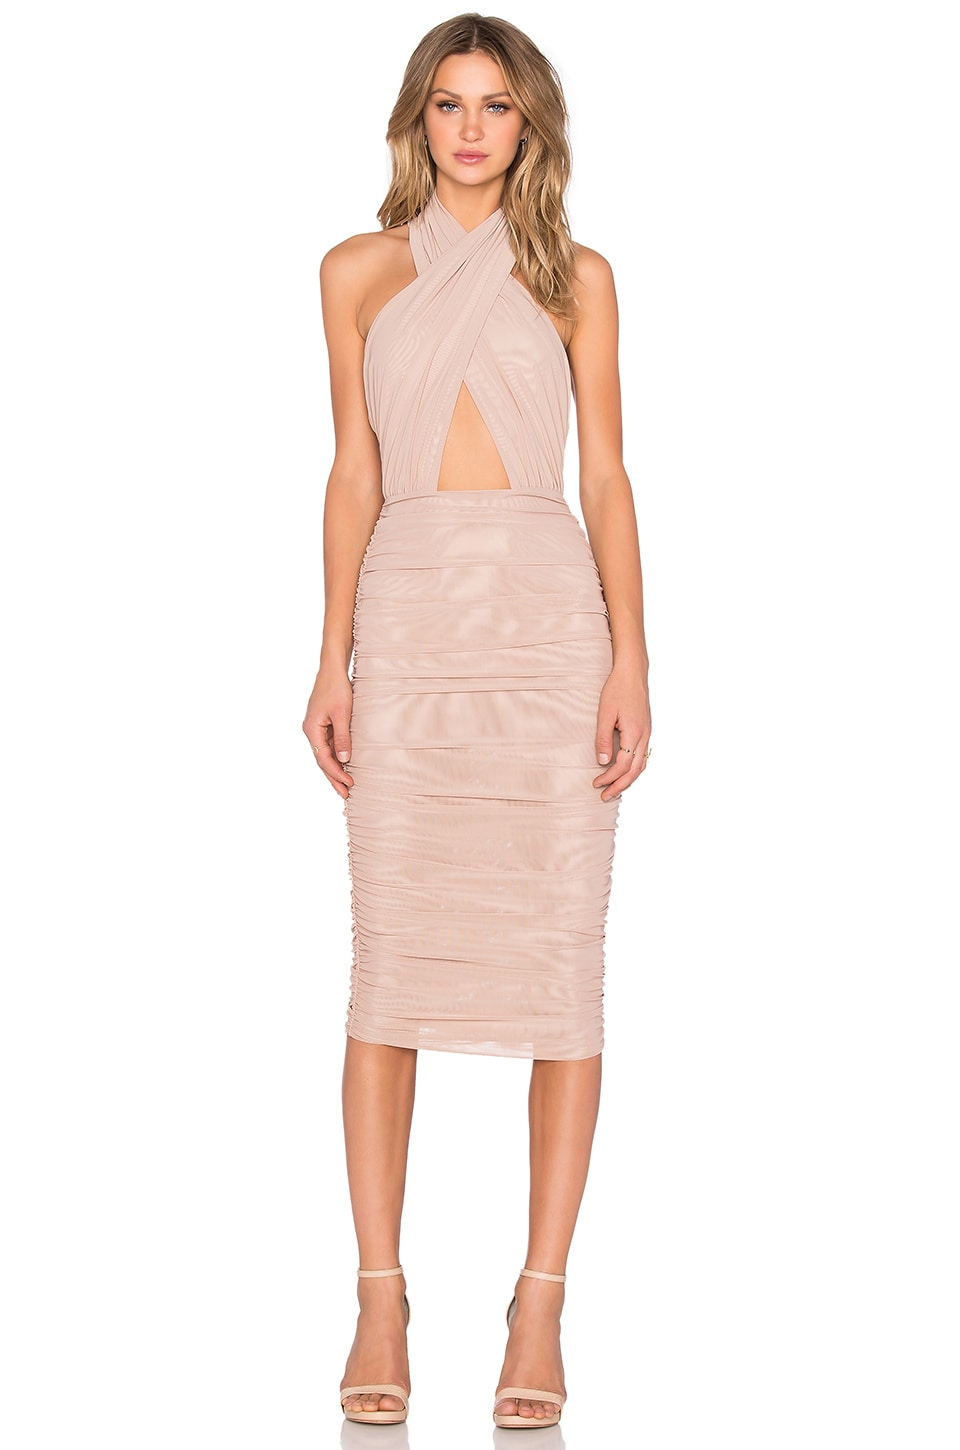 Misha Collection Keziah Dress in Nude